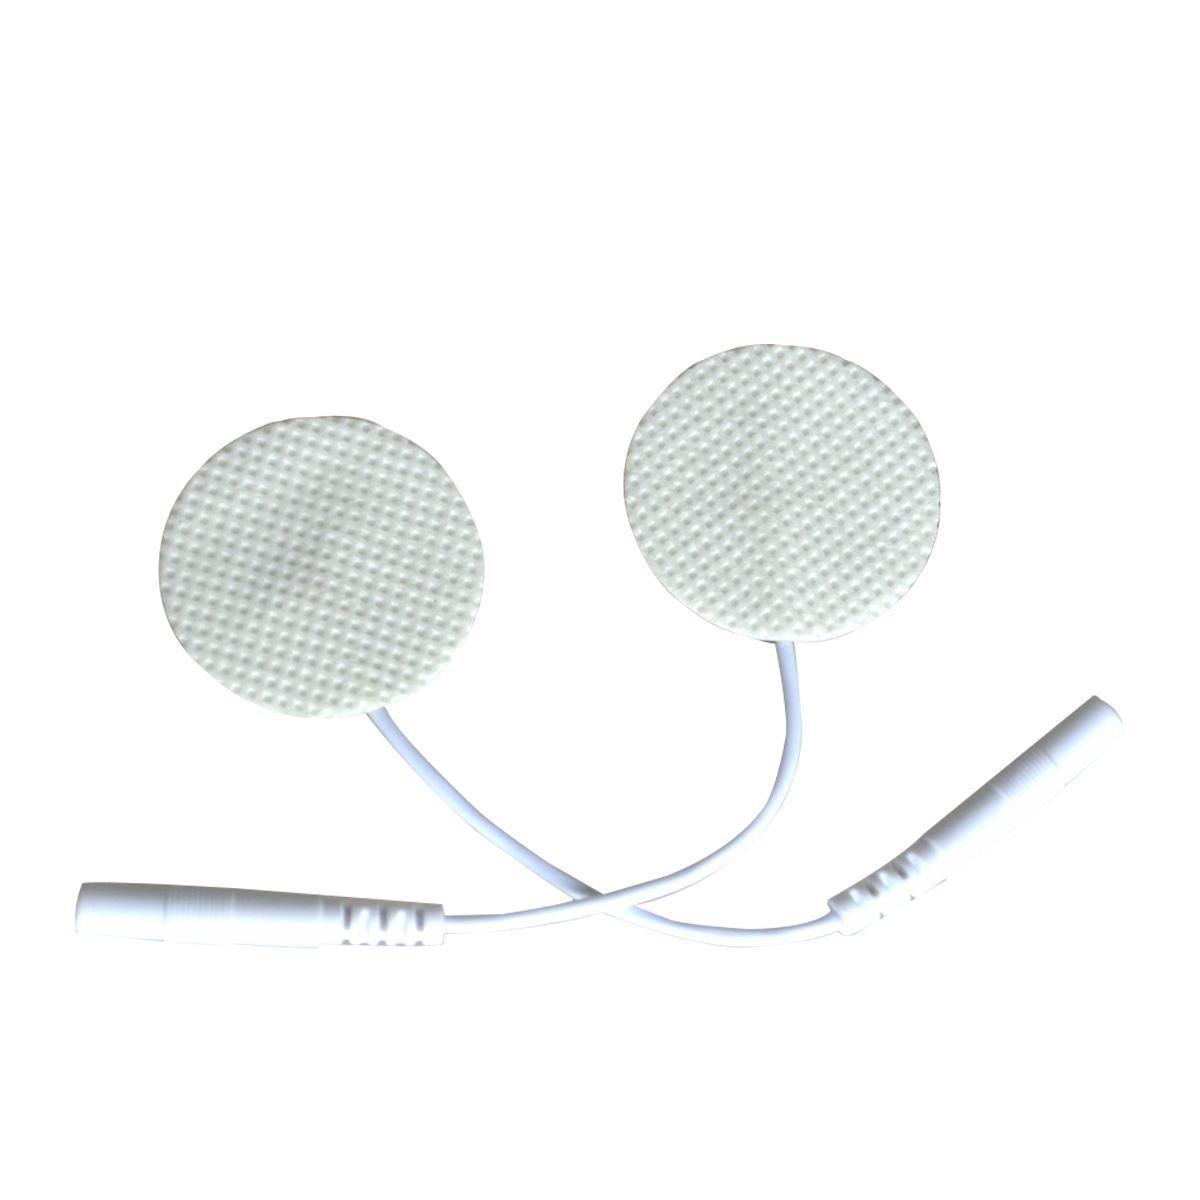 100Pairs/Lot Round Self-adhesive Replacement Pads Tens Unit Electrode Pads For Digital Physiotherapy Device Muscle Stimualtor zrlowr 2pcs electrode replacement pads for omron massagers elepuls long life patches